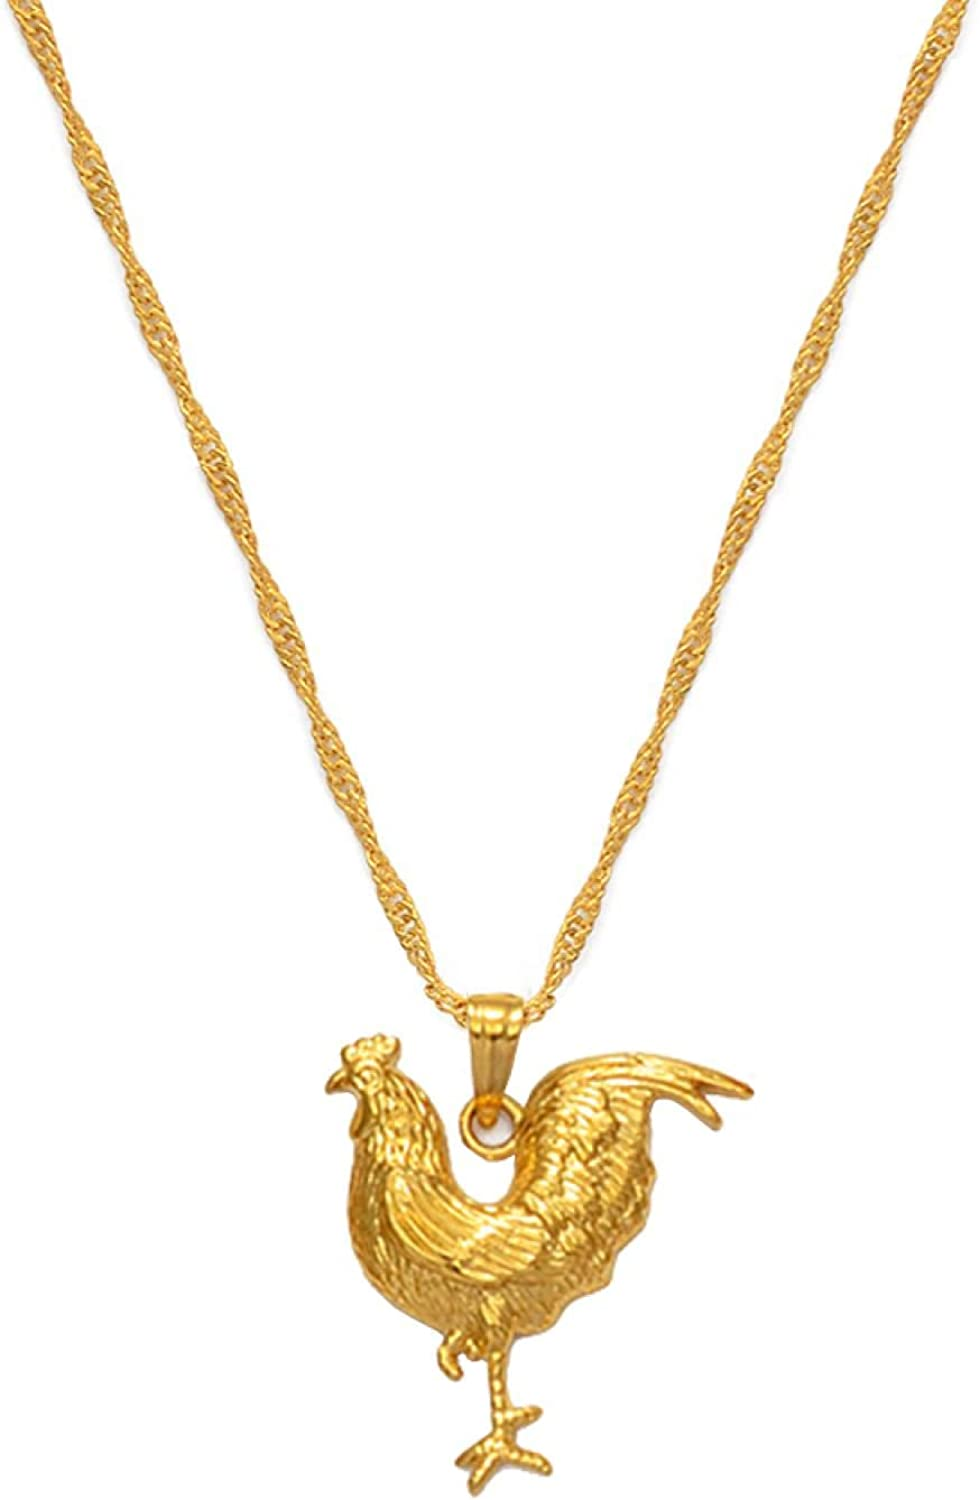 Gold Color Chicken Necklace For Women Girl Rooster Pendant And Chain Necklaces Jewelry Gifts